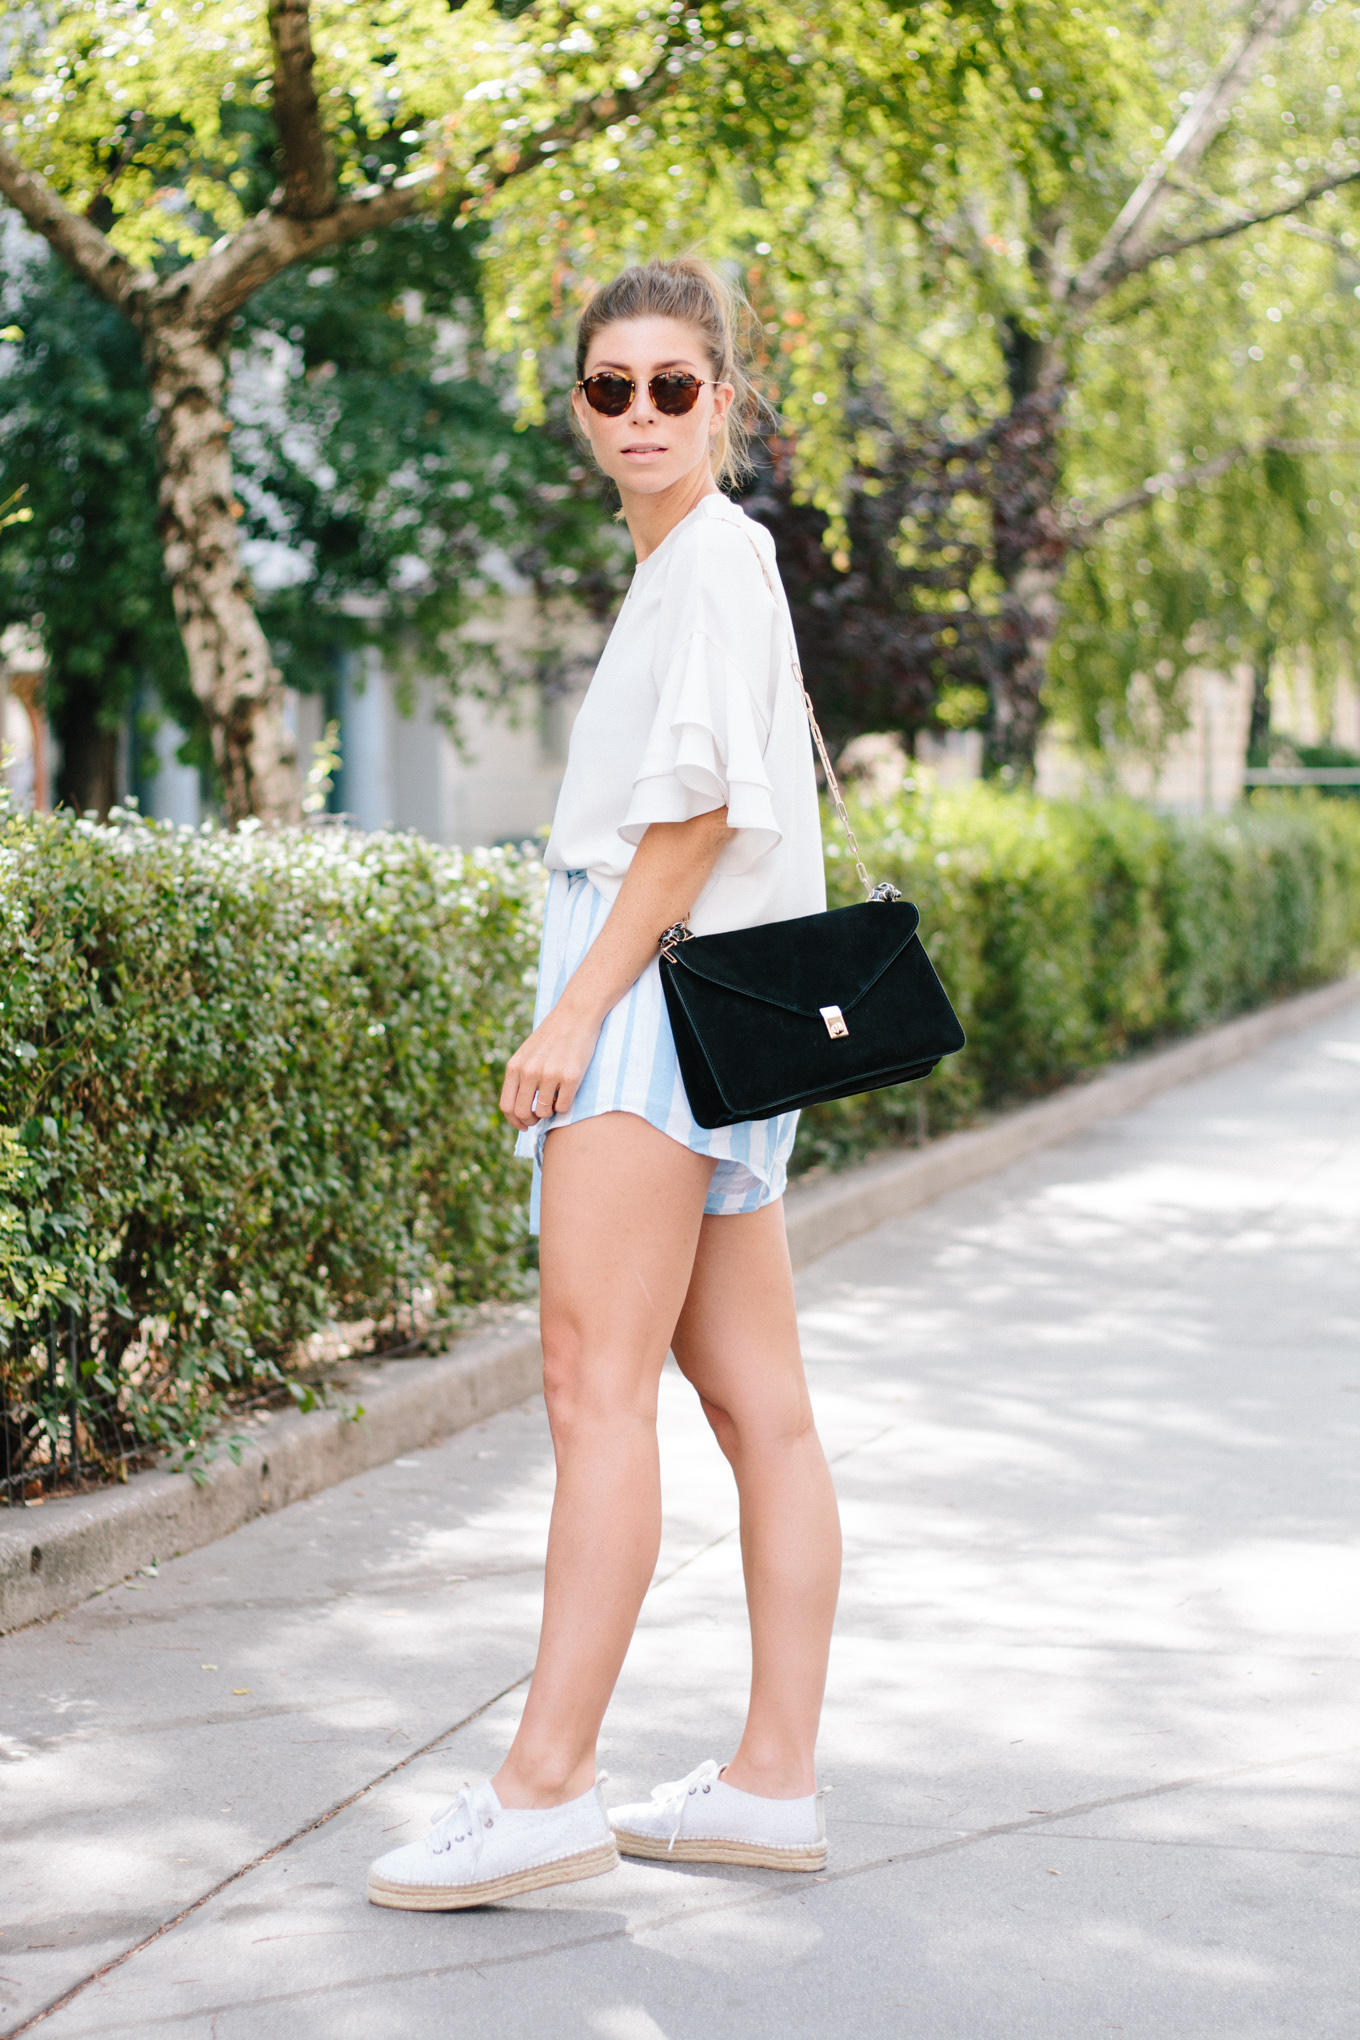 Shorts In The City | The Daily Dose